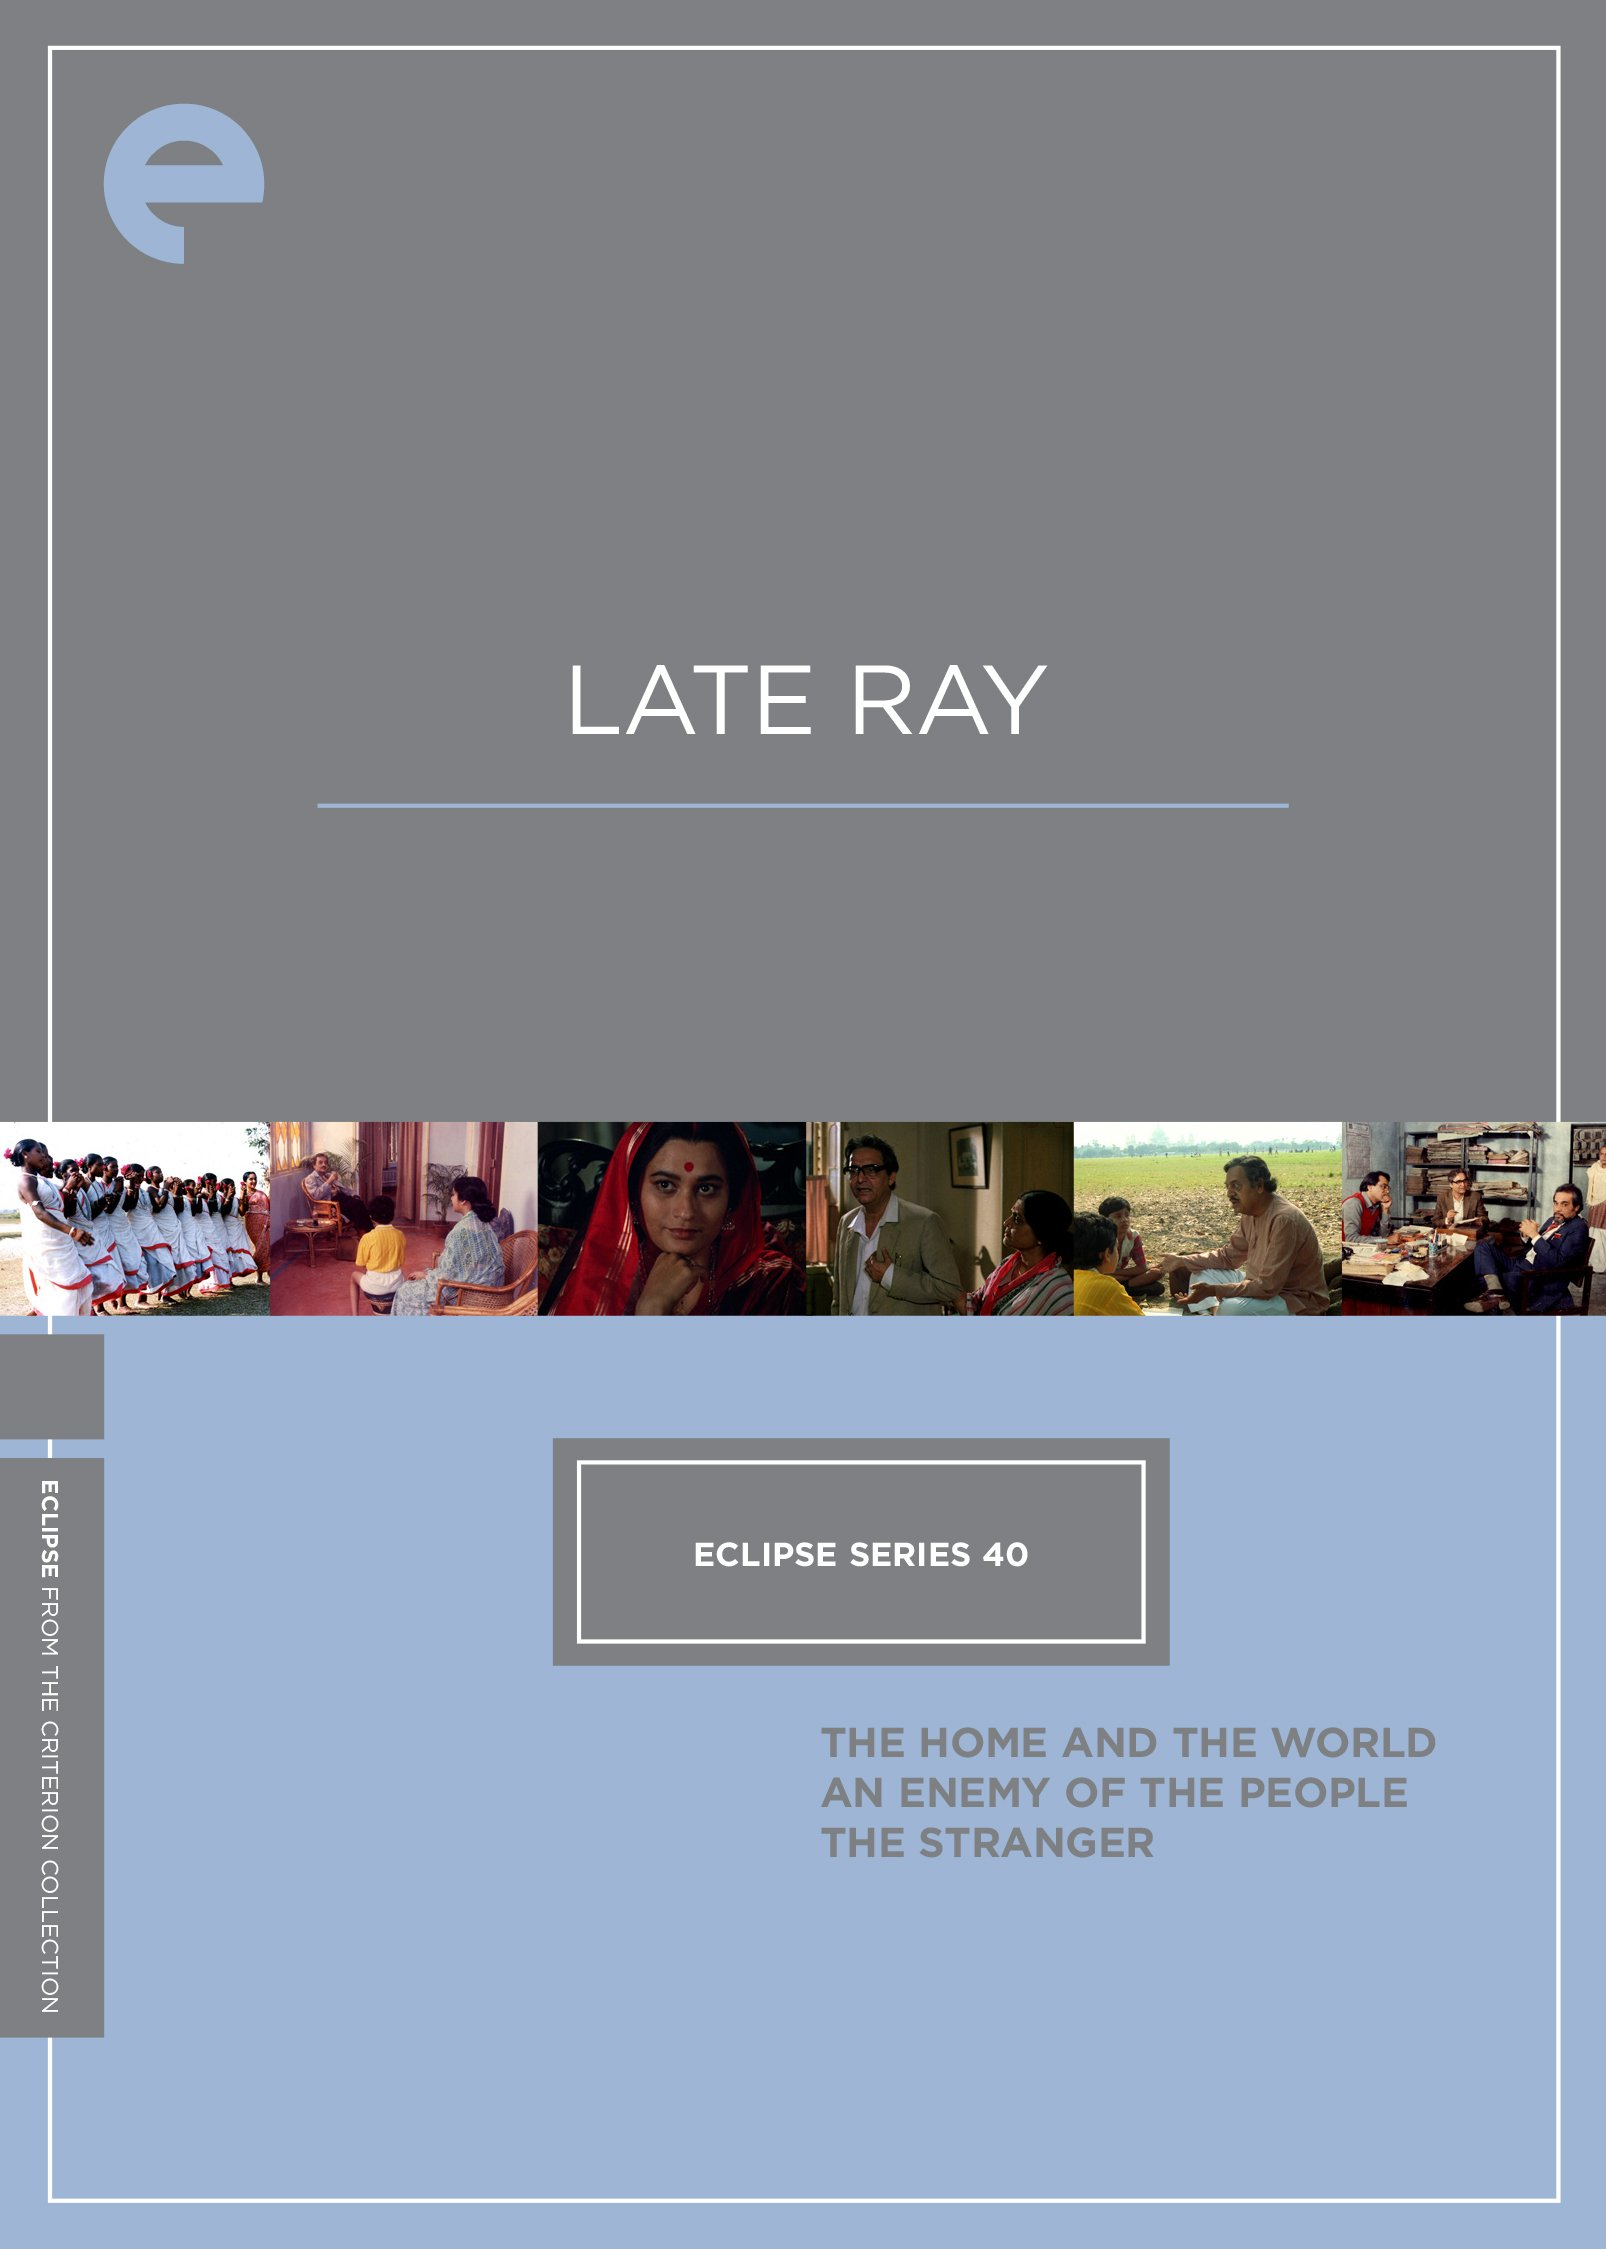 Eclipse Series 40: Late Ray (The Home and the World / An Enemy of the People / The Stranger) (The Criterion Collection) by Criterion Collection